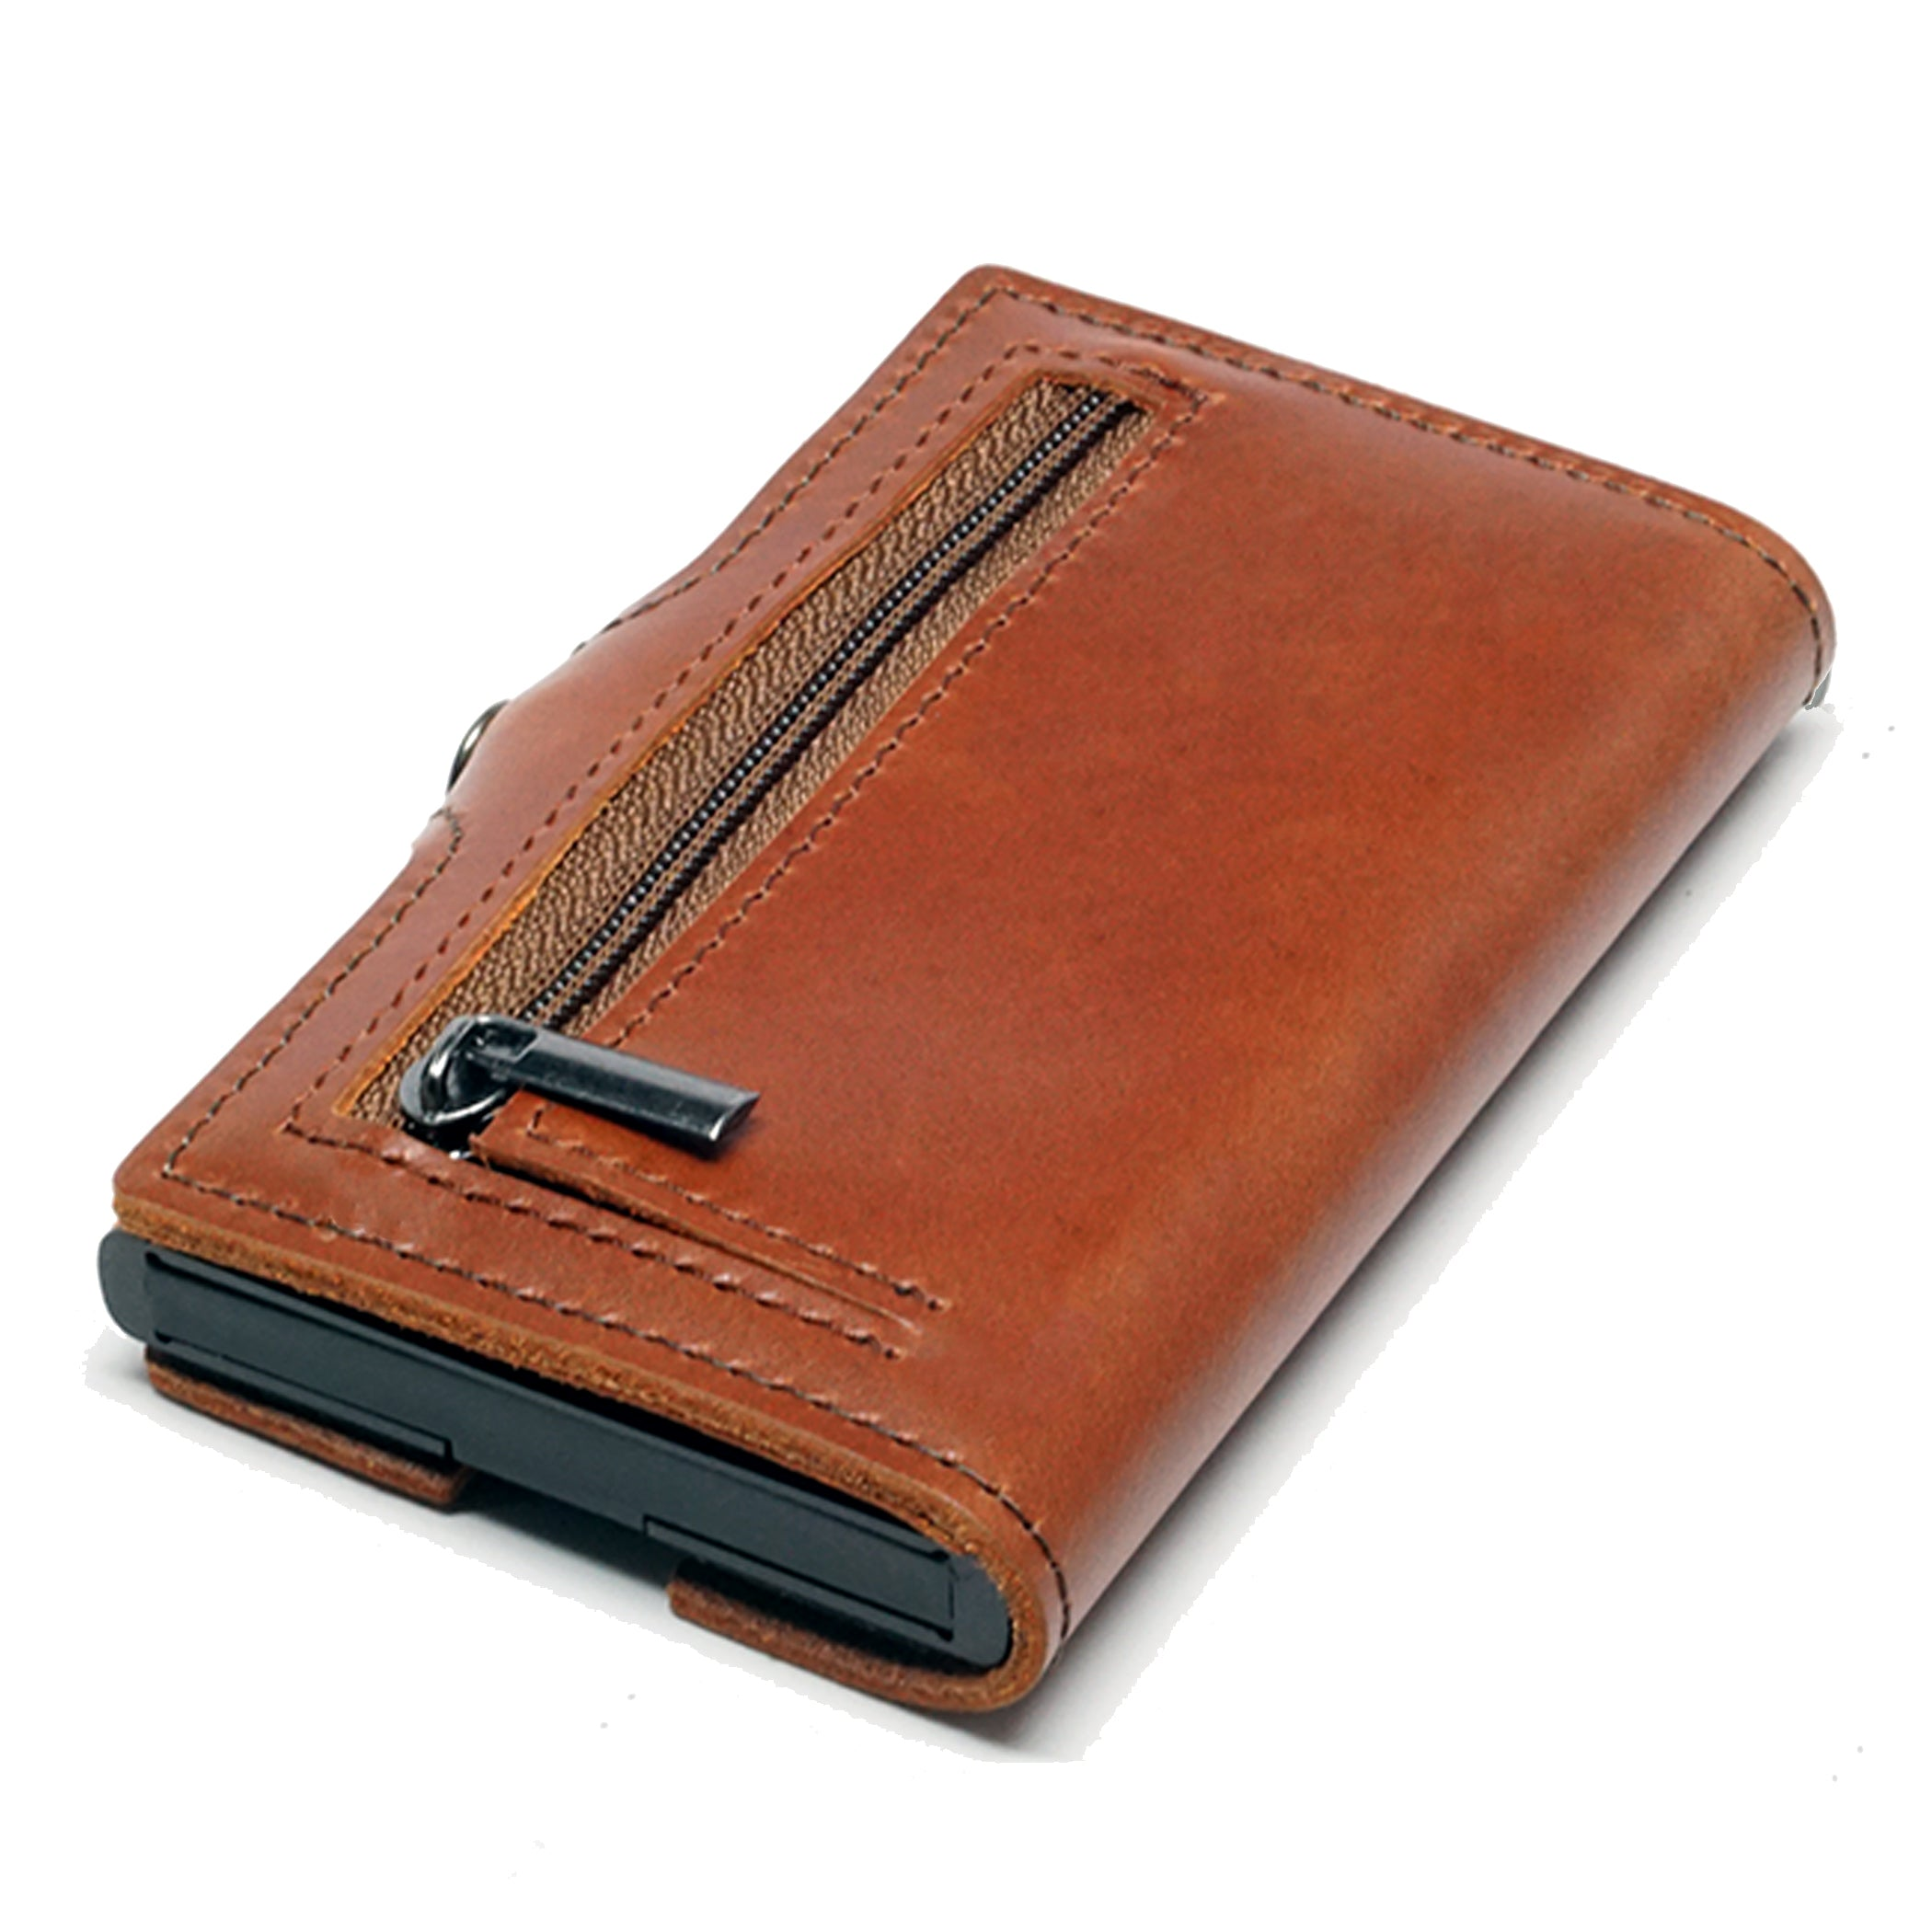 Card Blocr Credit Card Wallet in Brown Leather | RFID Wallet Backside